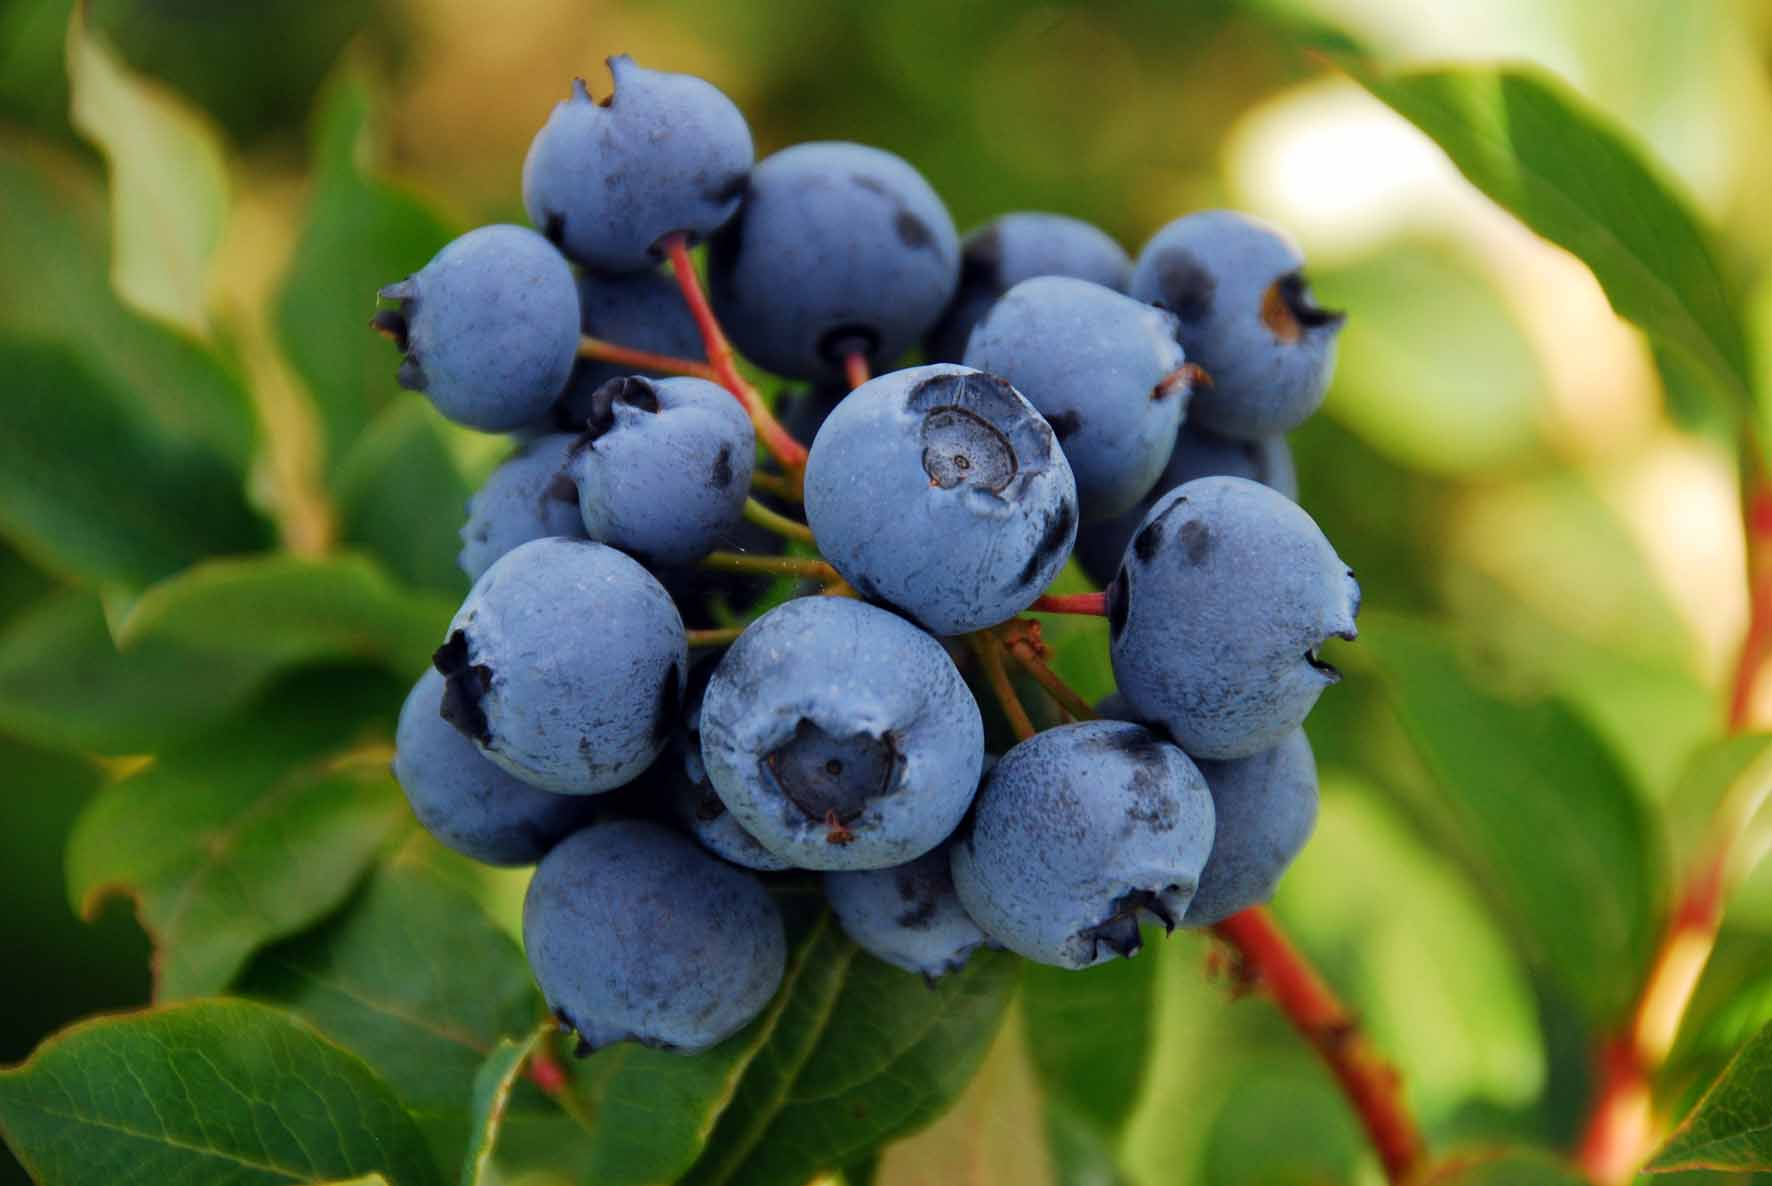 Dartmoor Blueberries